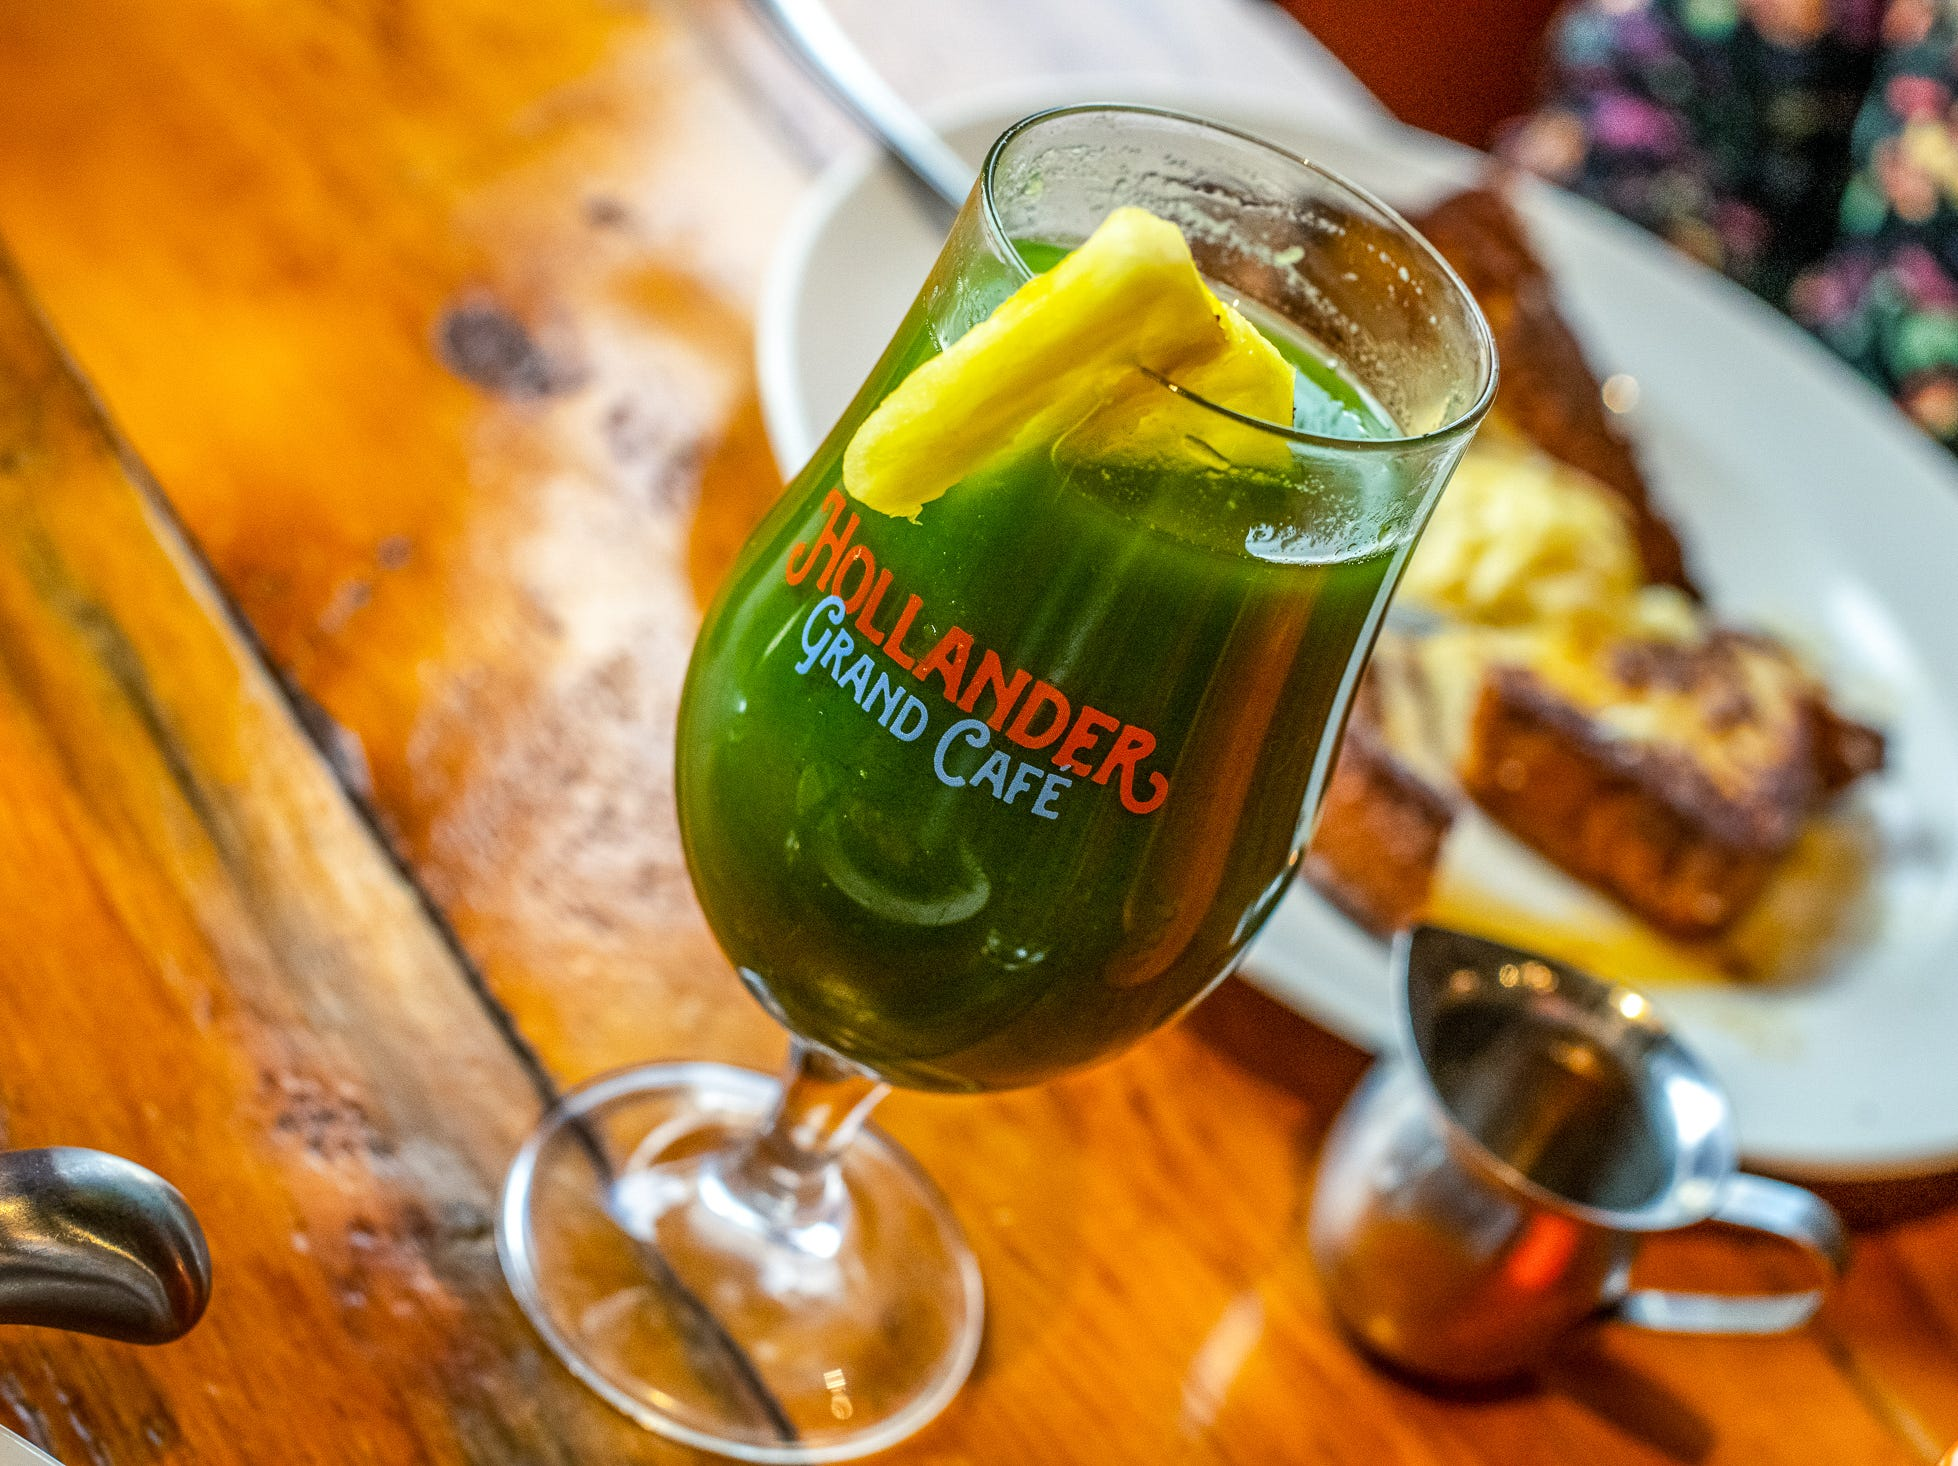 Café Hollander will also offer an array of new fresh juices including the Daily Greens made with kale, spinach, jalapeno, cucumbers, green apples and pineapple.